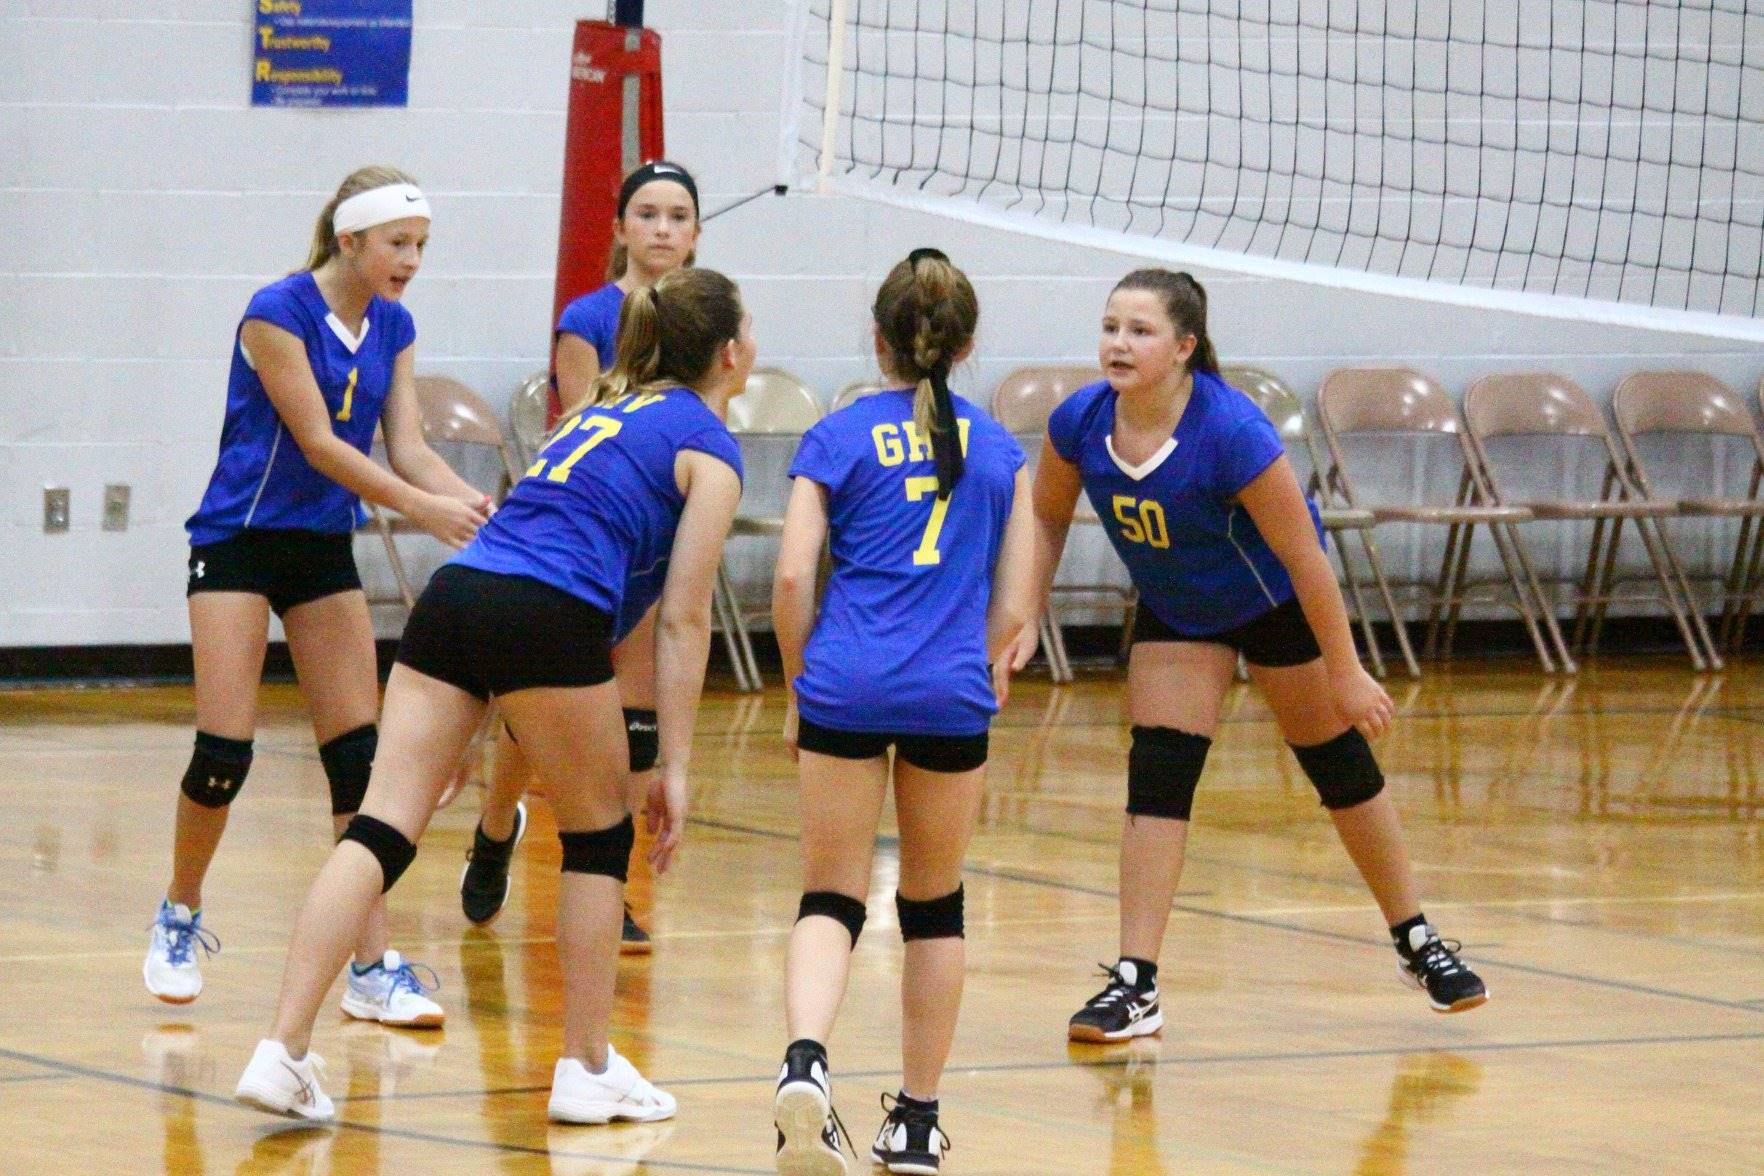 five volleyball players encouraging each other near the net